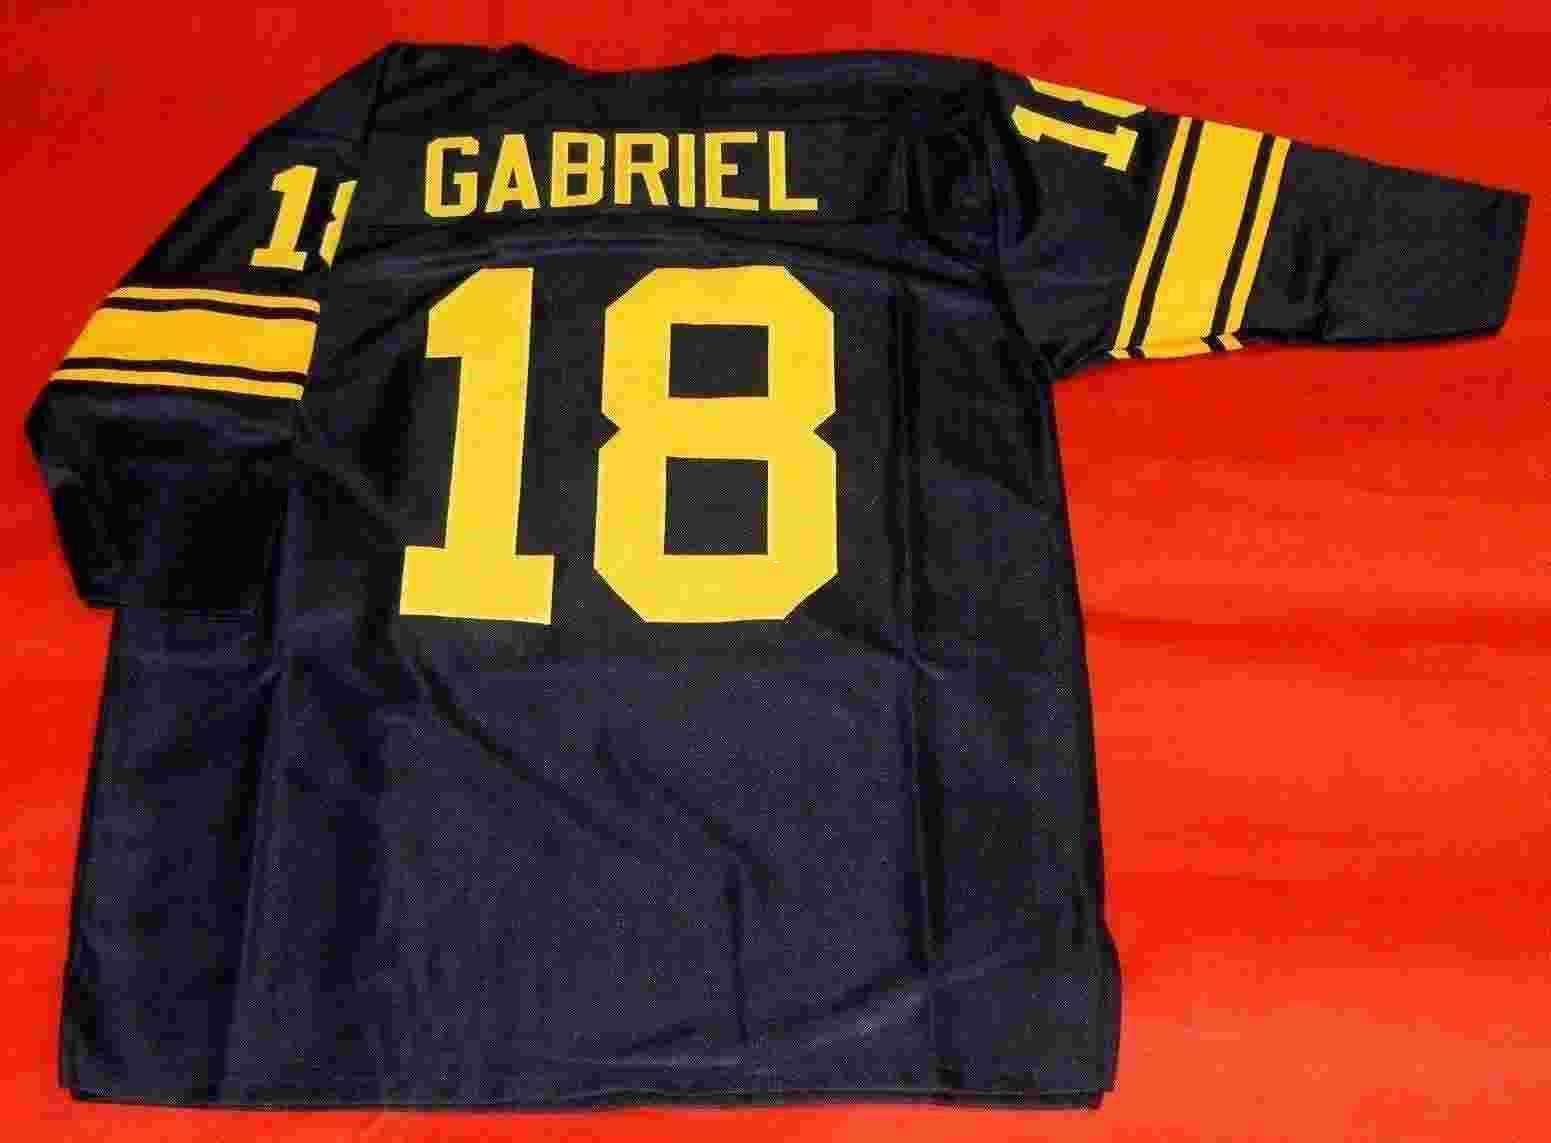 Cheap # 18 ROMAN GABRIEL CUSTOM 3/4 SLEEVE High-end MITCHELL NESS Jersey Uomo cuciture High-end taglia S-5XL Football maglie College